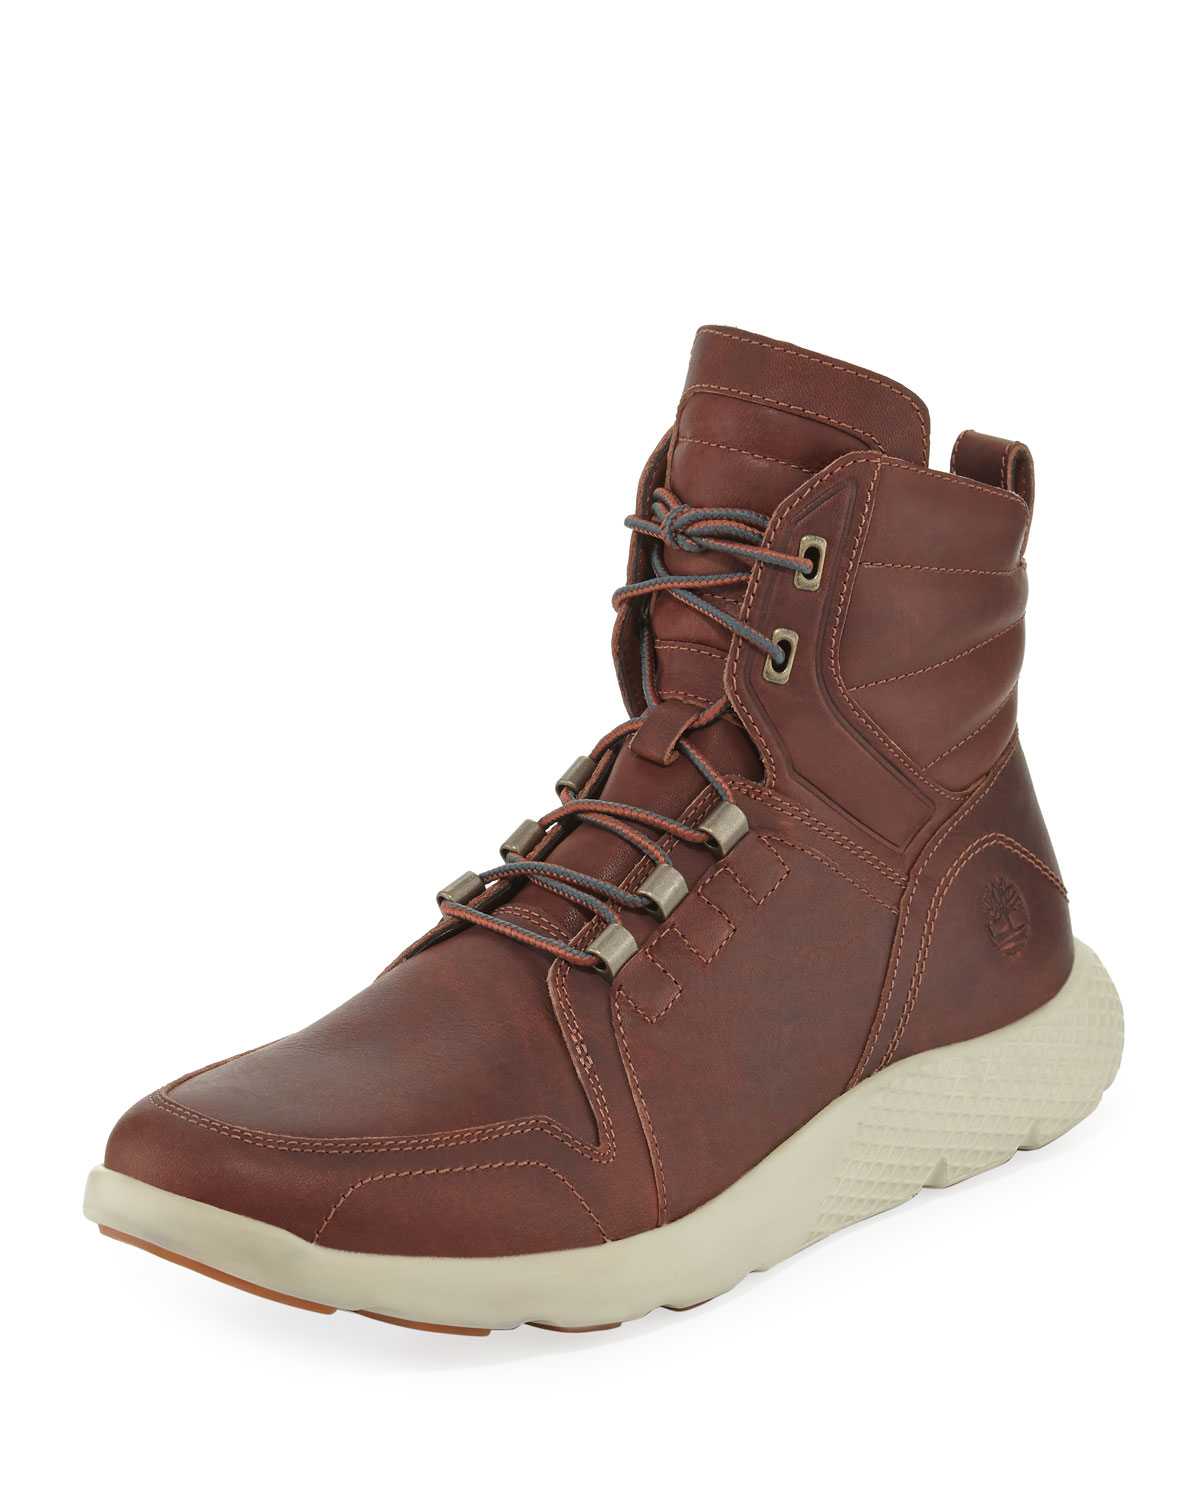 Limited Edition FlyRoam Leather Sport Hiker Boot, Brown